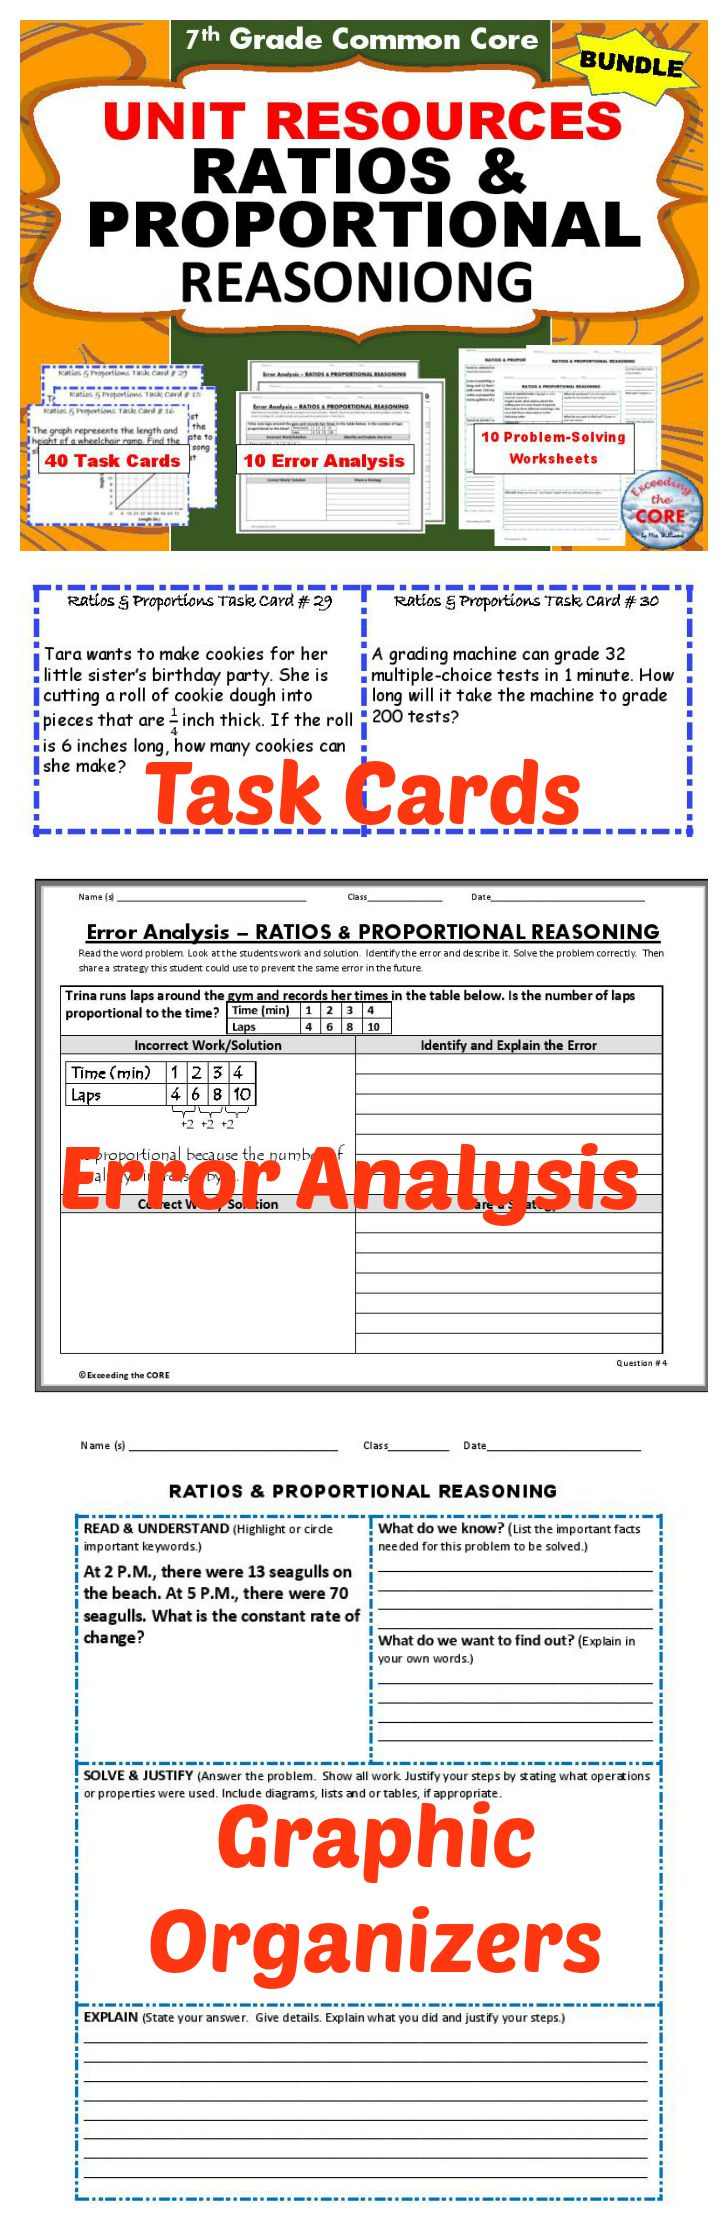 worksheet Proportional Reasoning Worksheets ratios proportions bundle task cards error analysis graphic i use the following proportional reasoning unit resources every year with my 7th graders